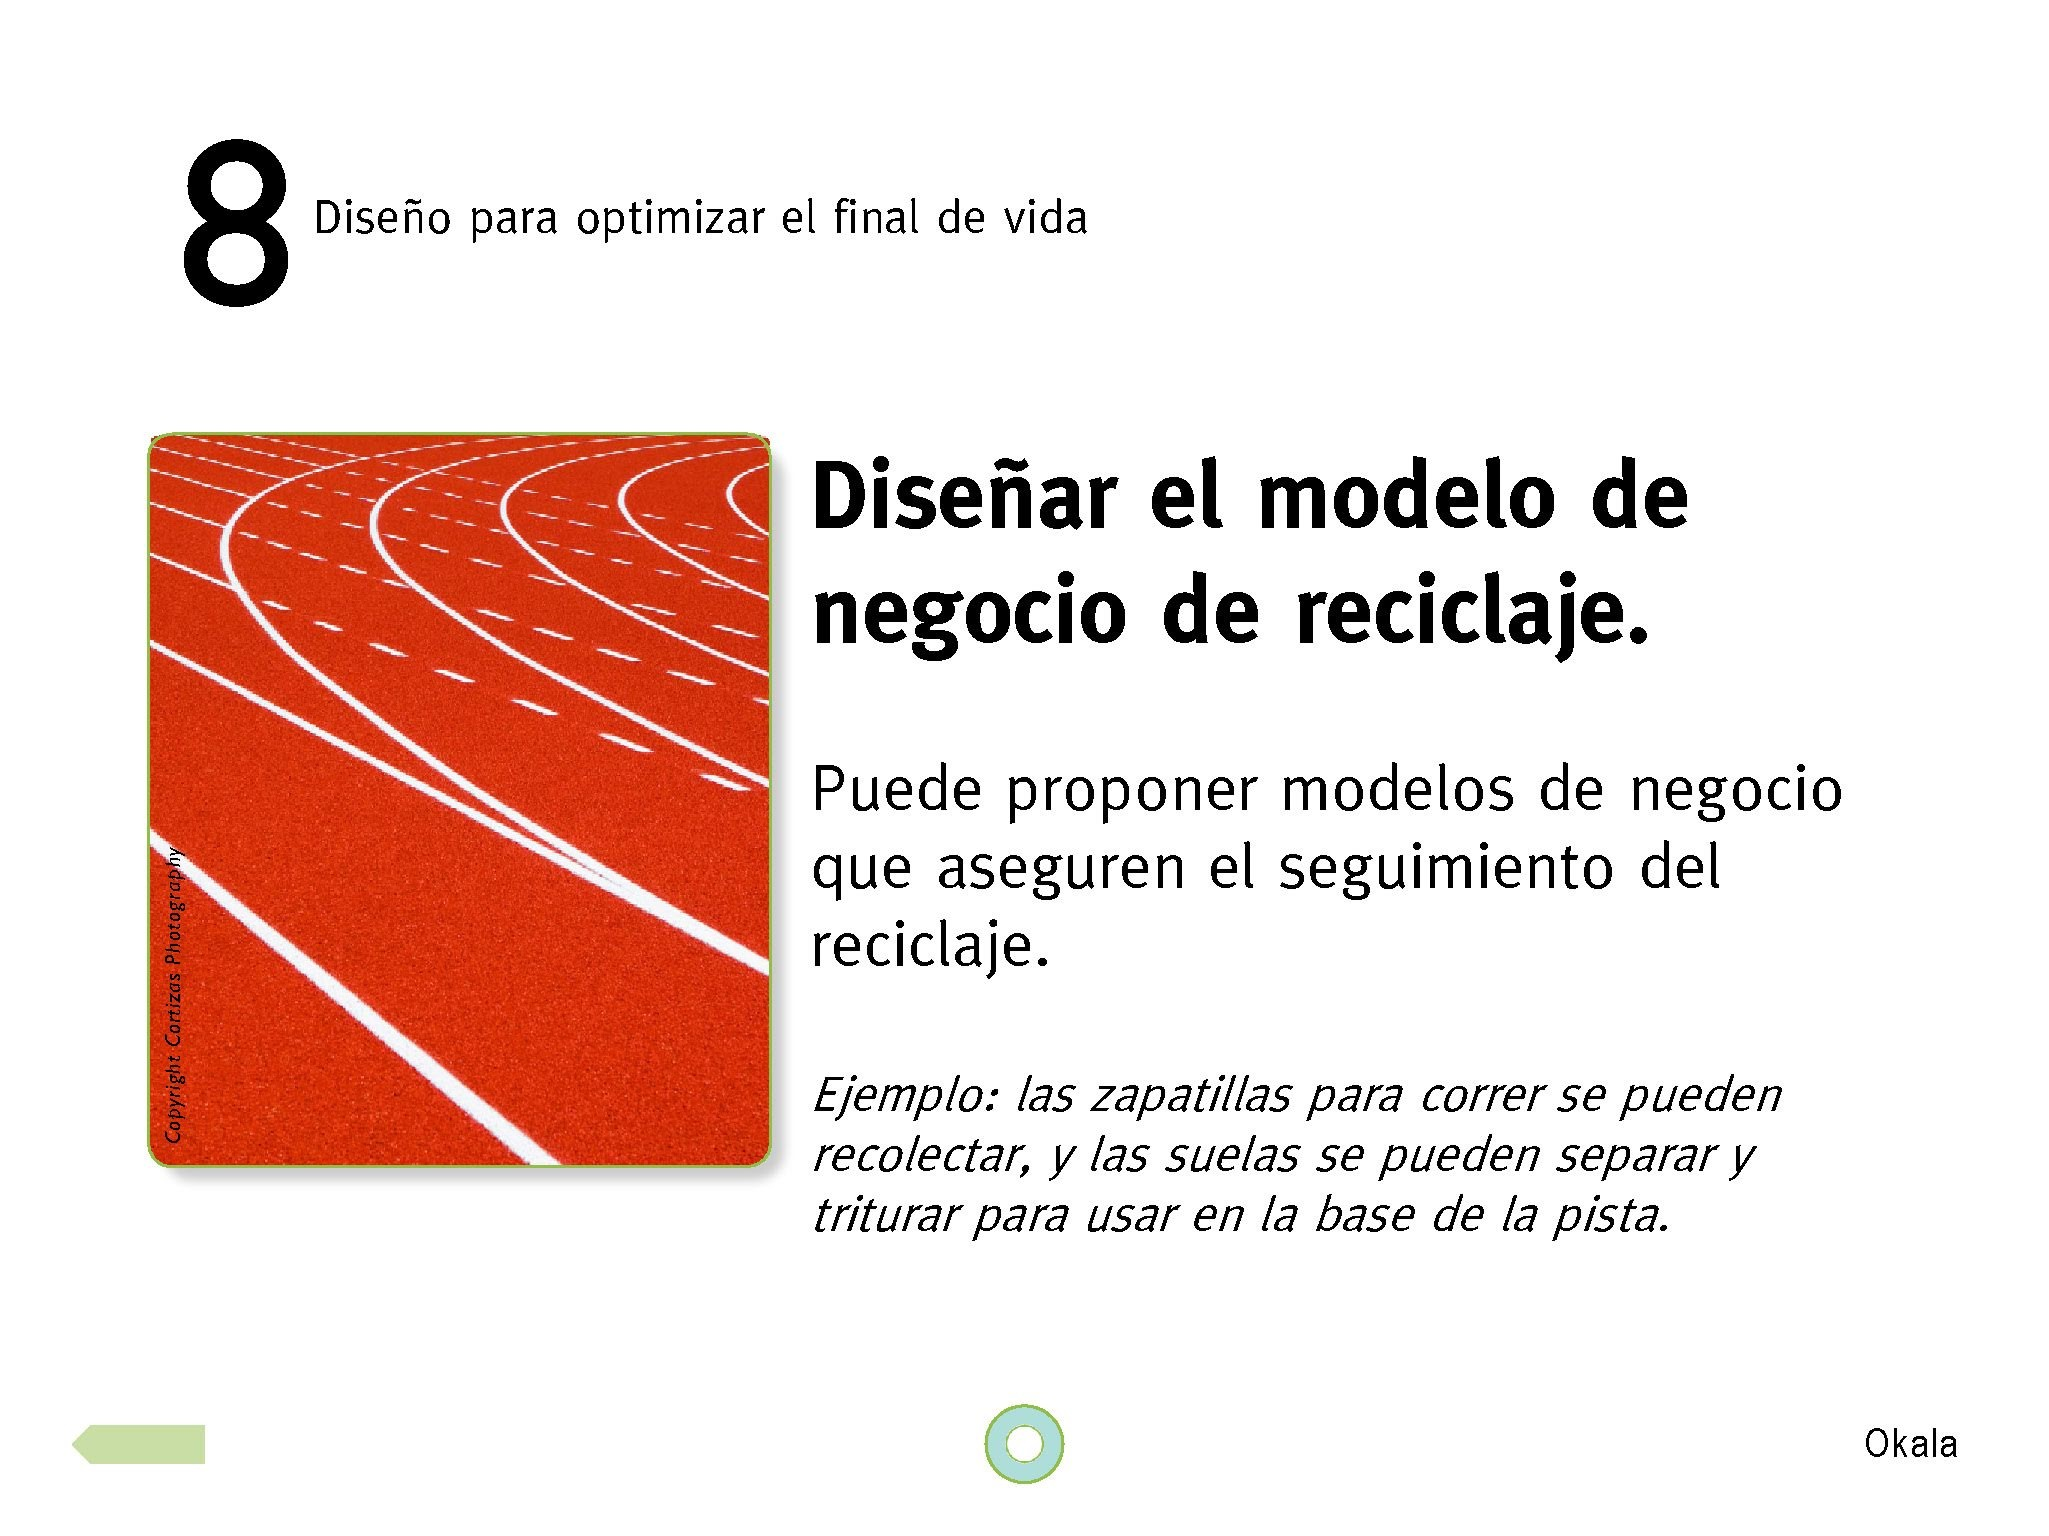 okala-ecodesign-strategy-guide-2012-spanish.new_page_43-1